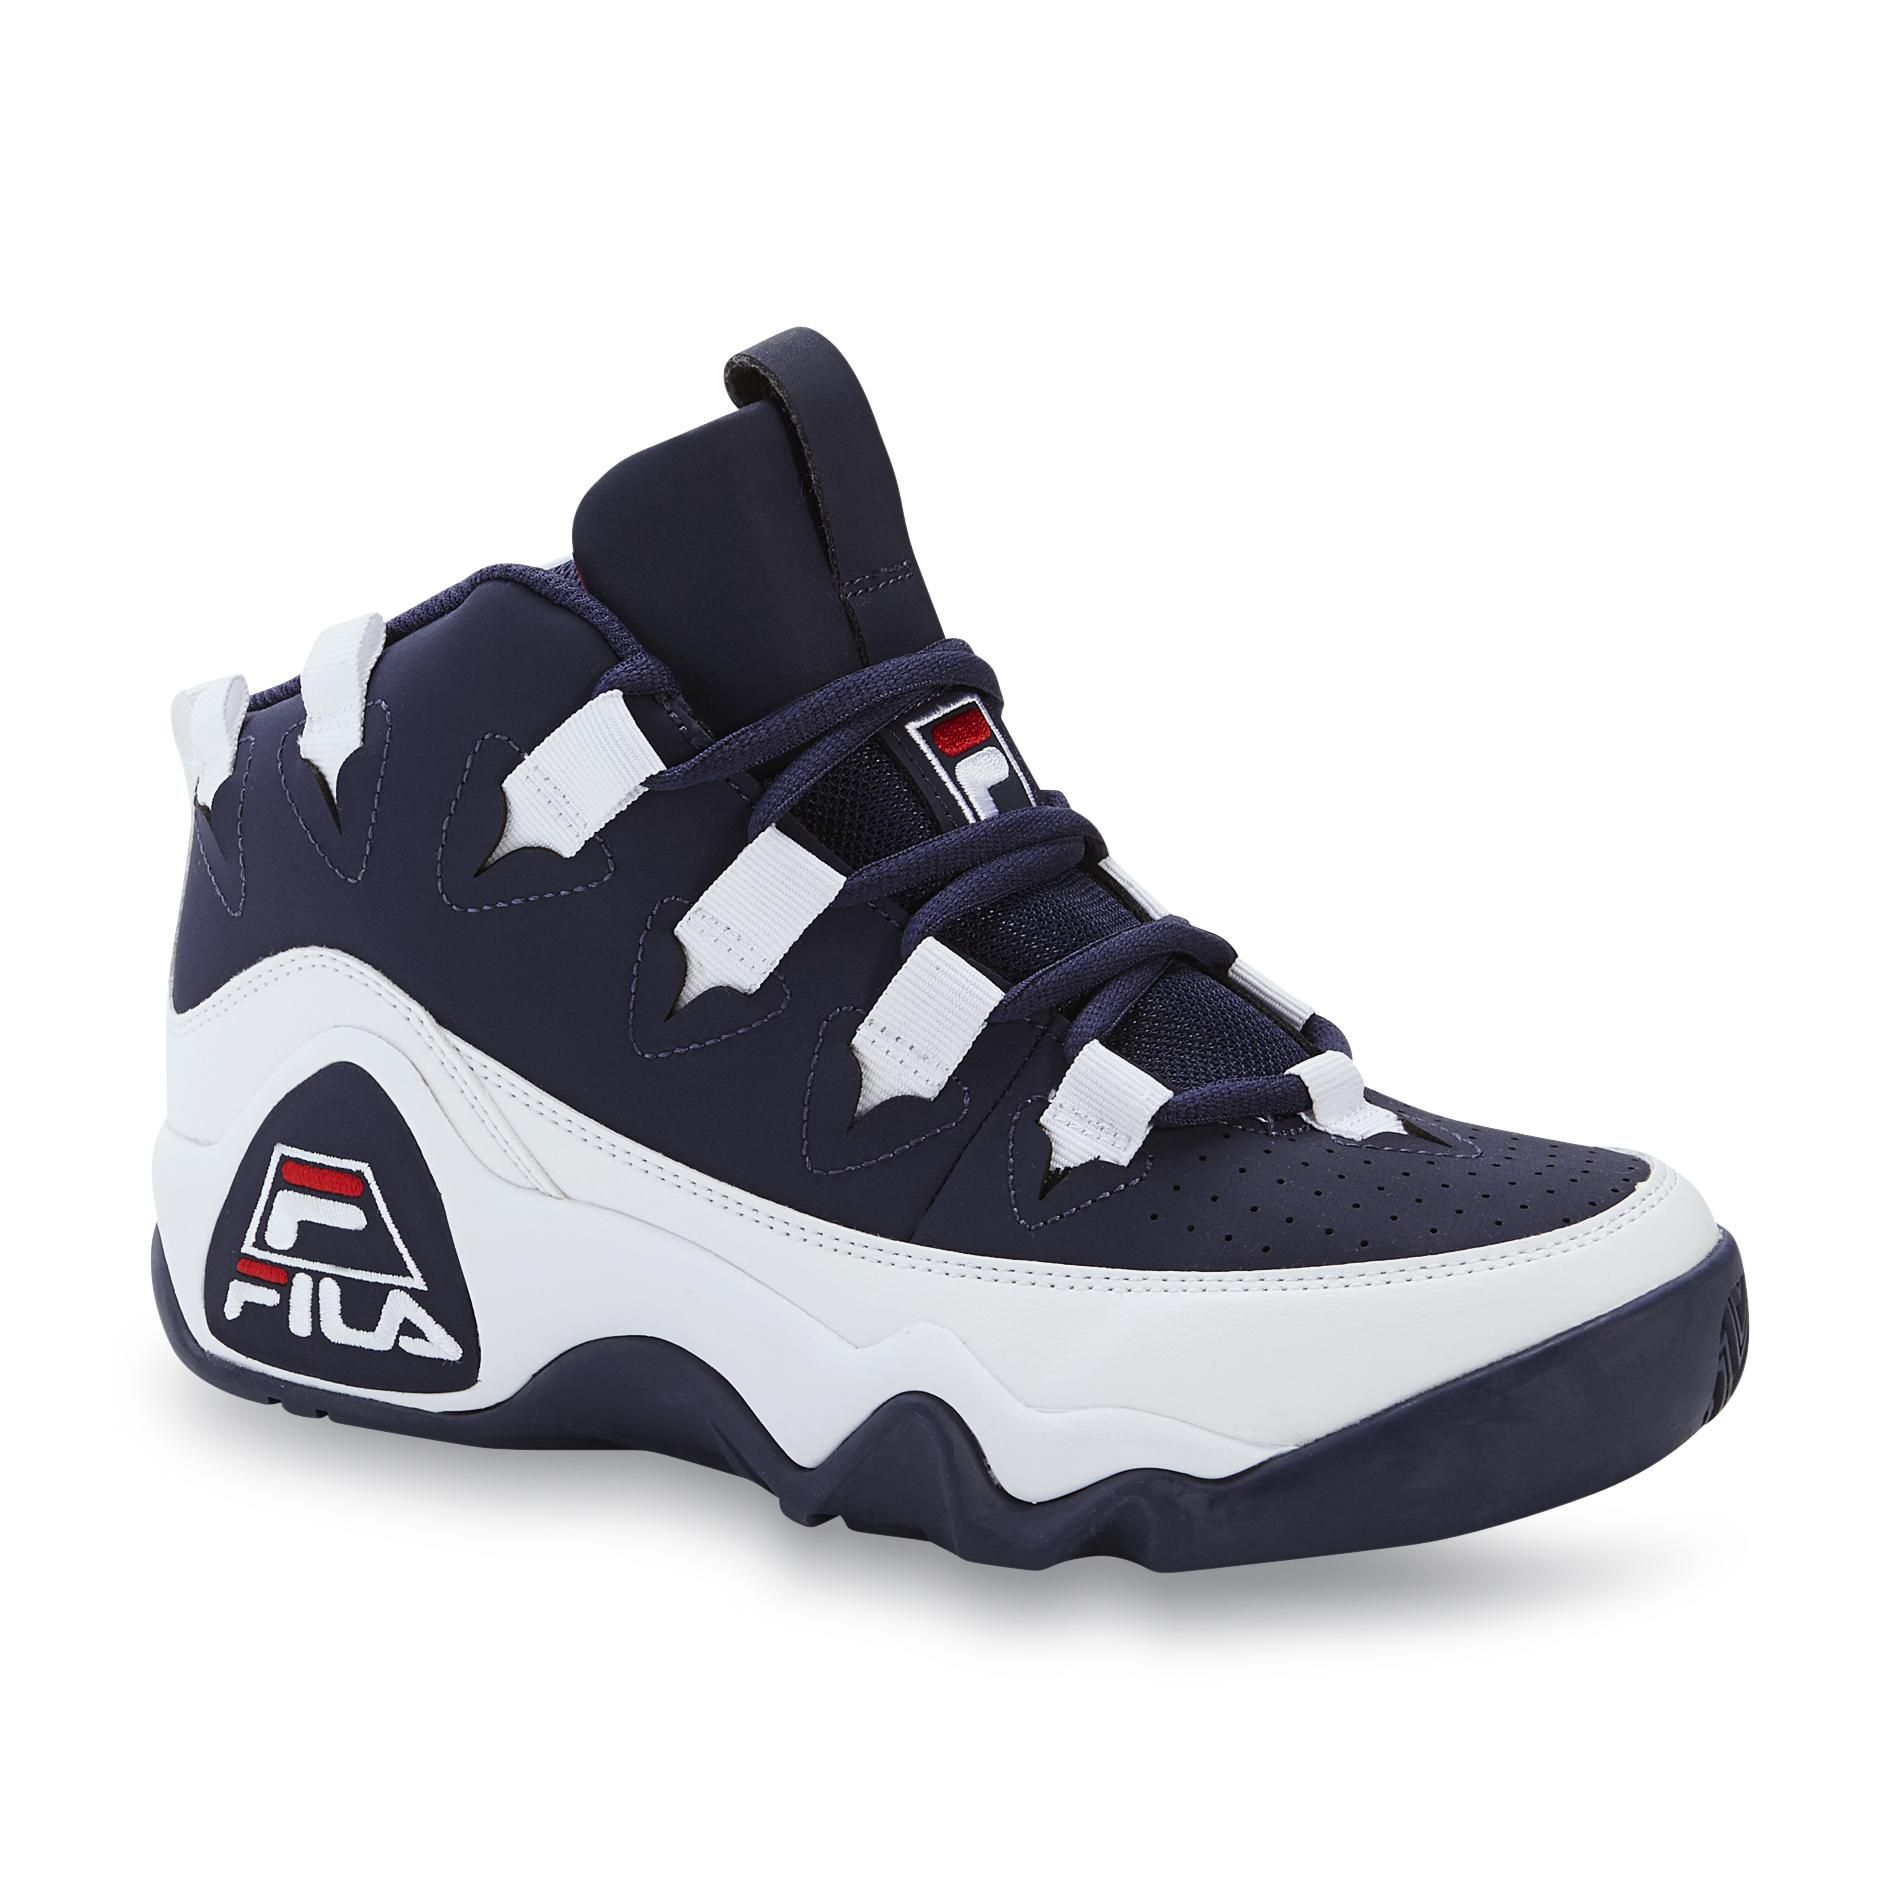 fila shoes making with panthers score yesterday